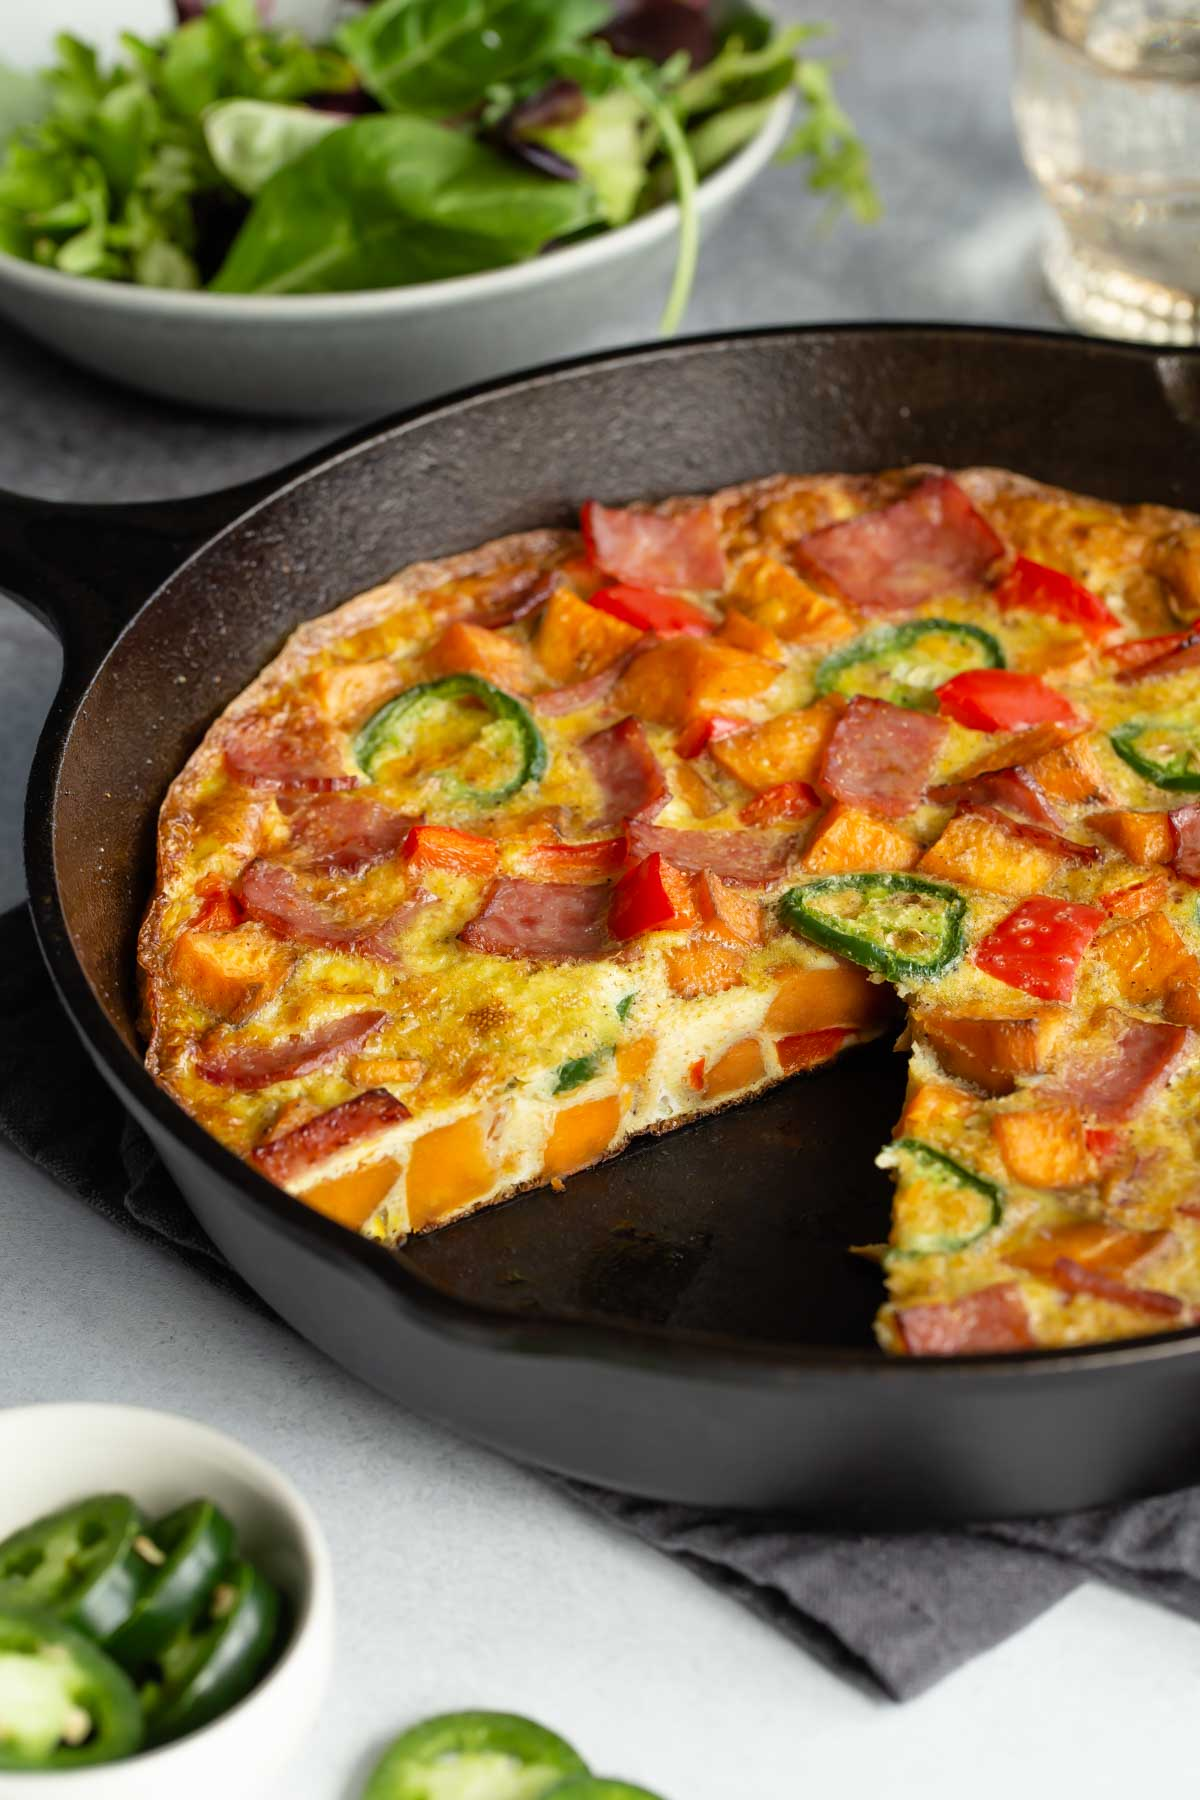 Close up side view of the frittata in a skillet with a slice removed.